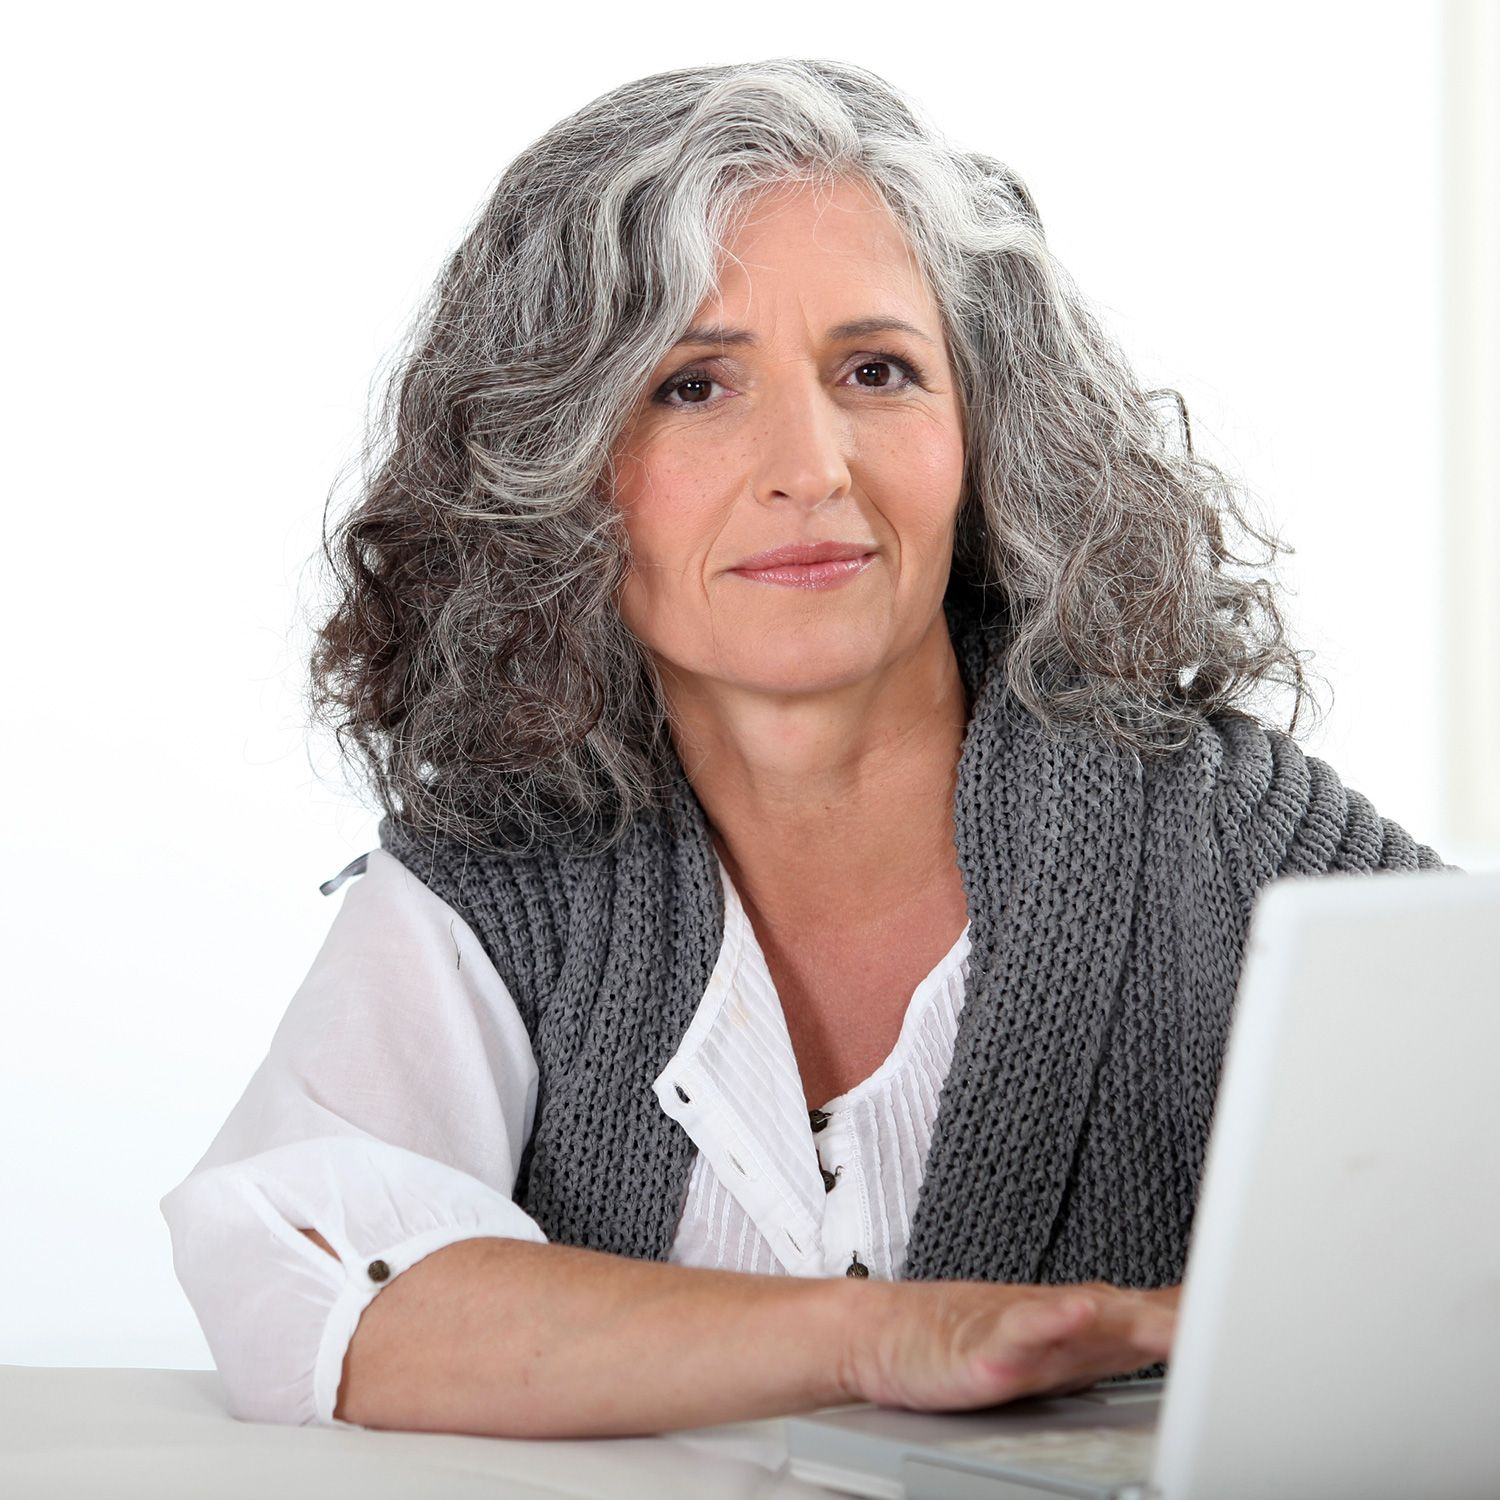 Gray haired mature picture